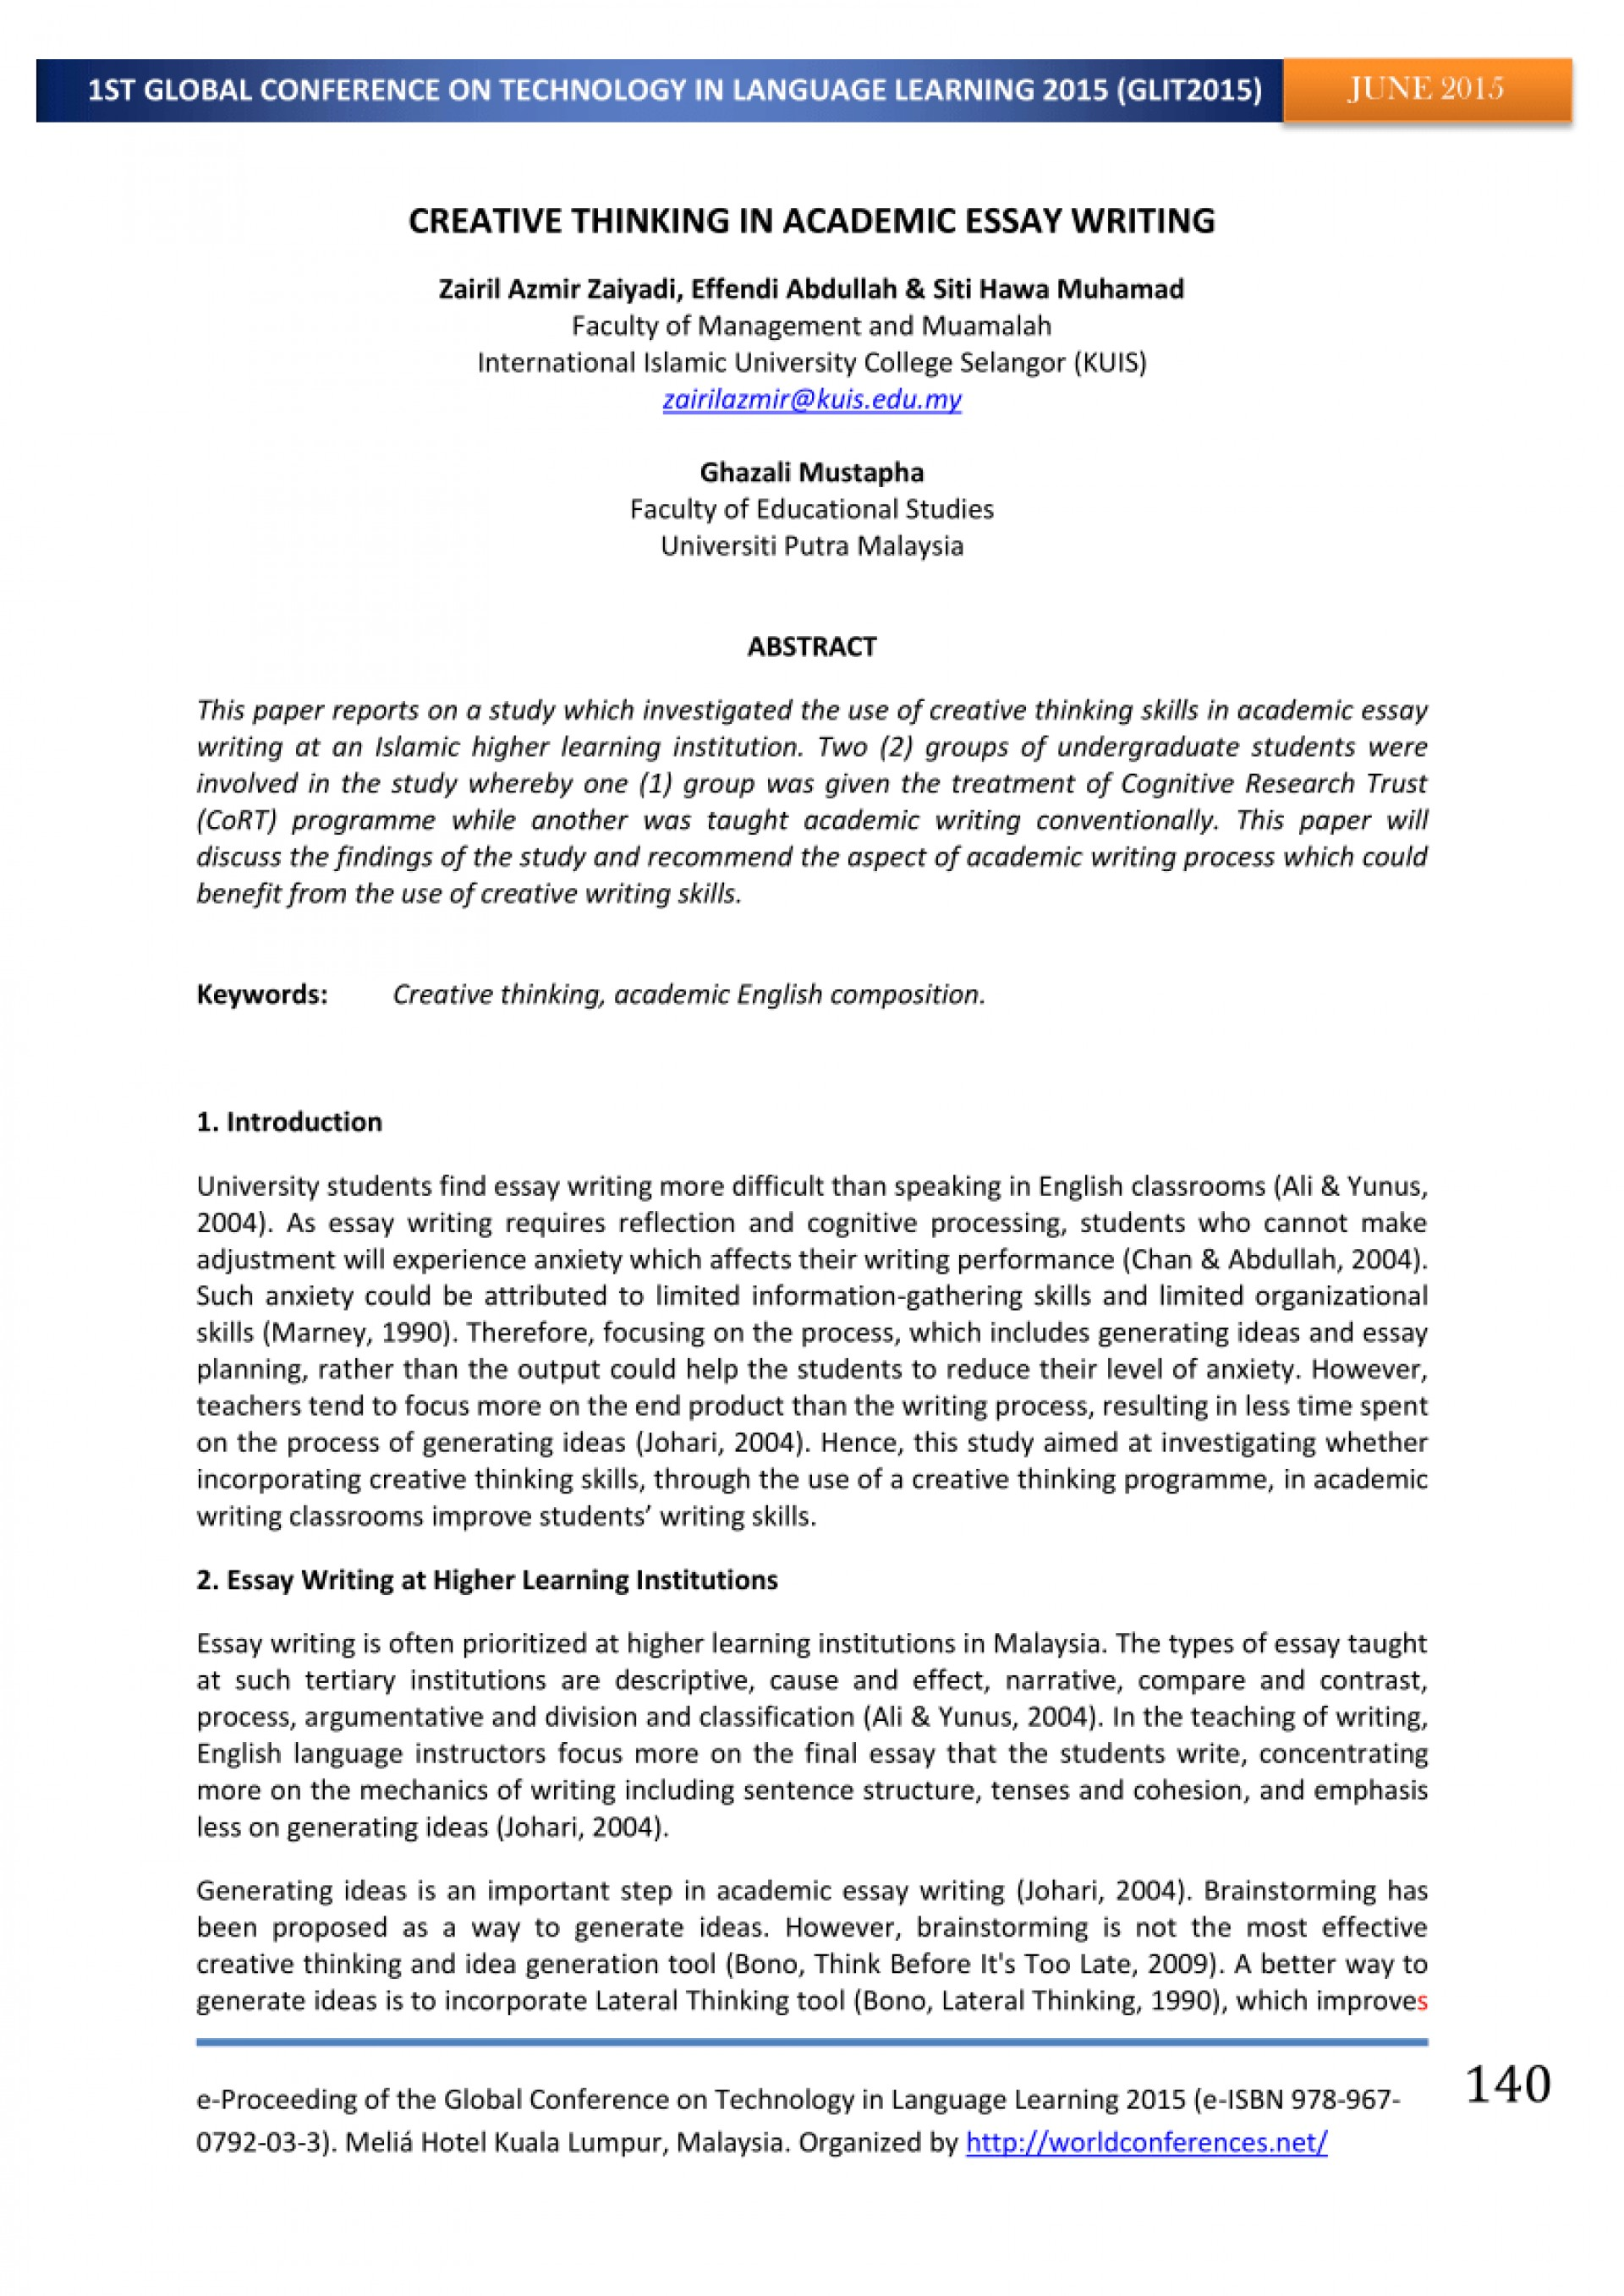 004 Academic Essay Writing Largepreview Awful Structure Example Skills Pdf 1920